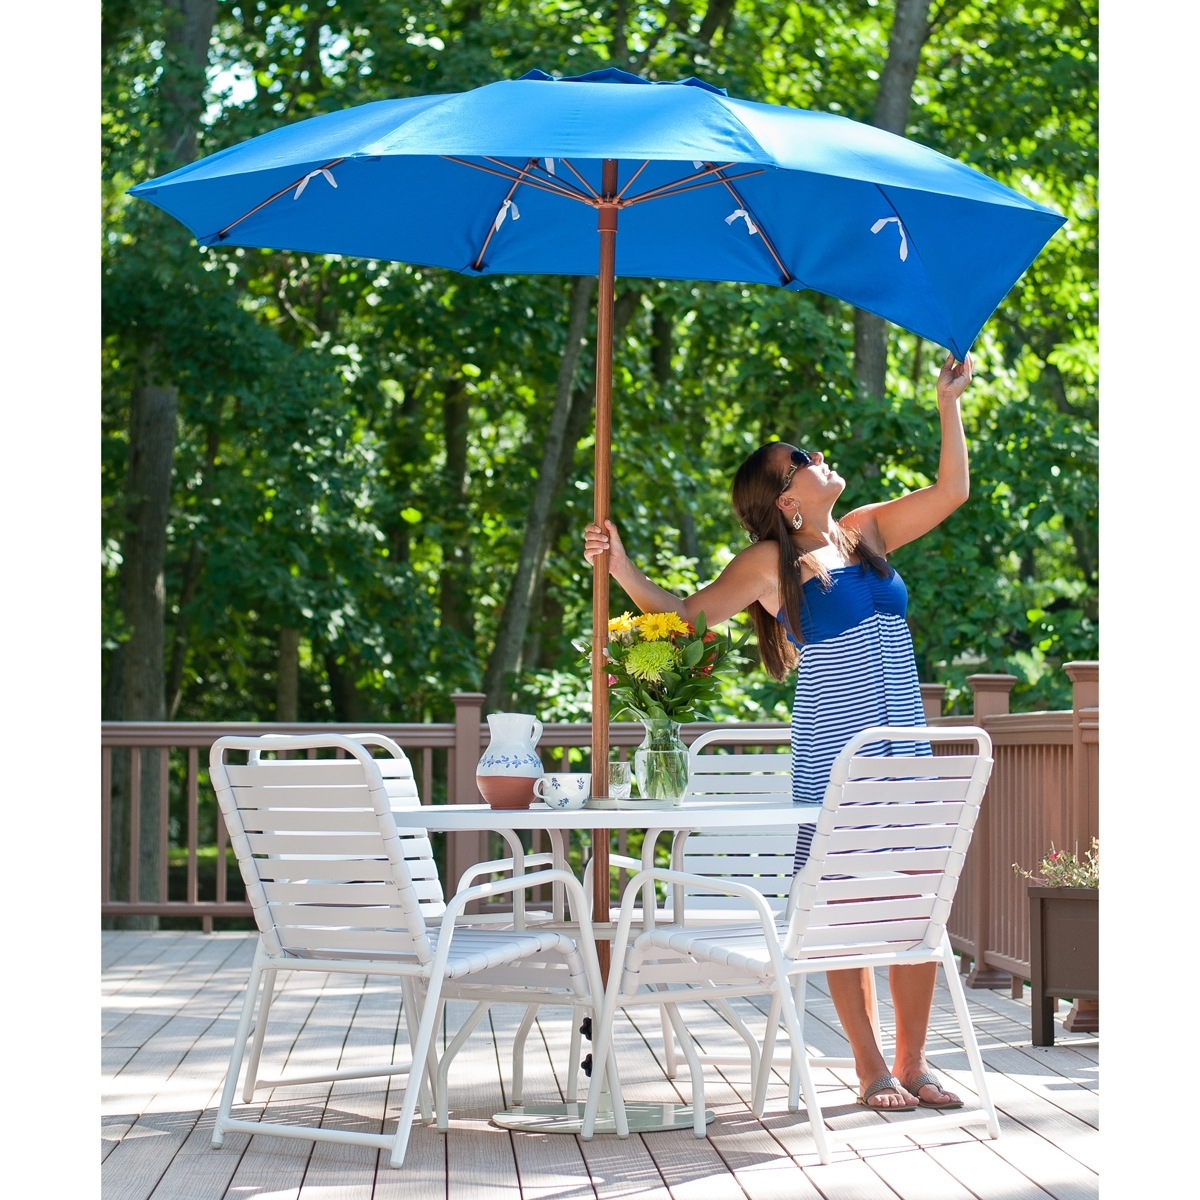 7.5 Ft Frankford Acrylic Fiberglass Vented Patio Umbrella No Valance Intended For Preferred Vented Patio Umbrellas (Gallery 12 of 20)